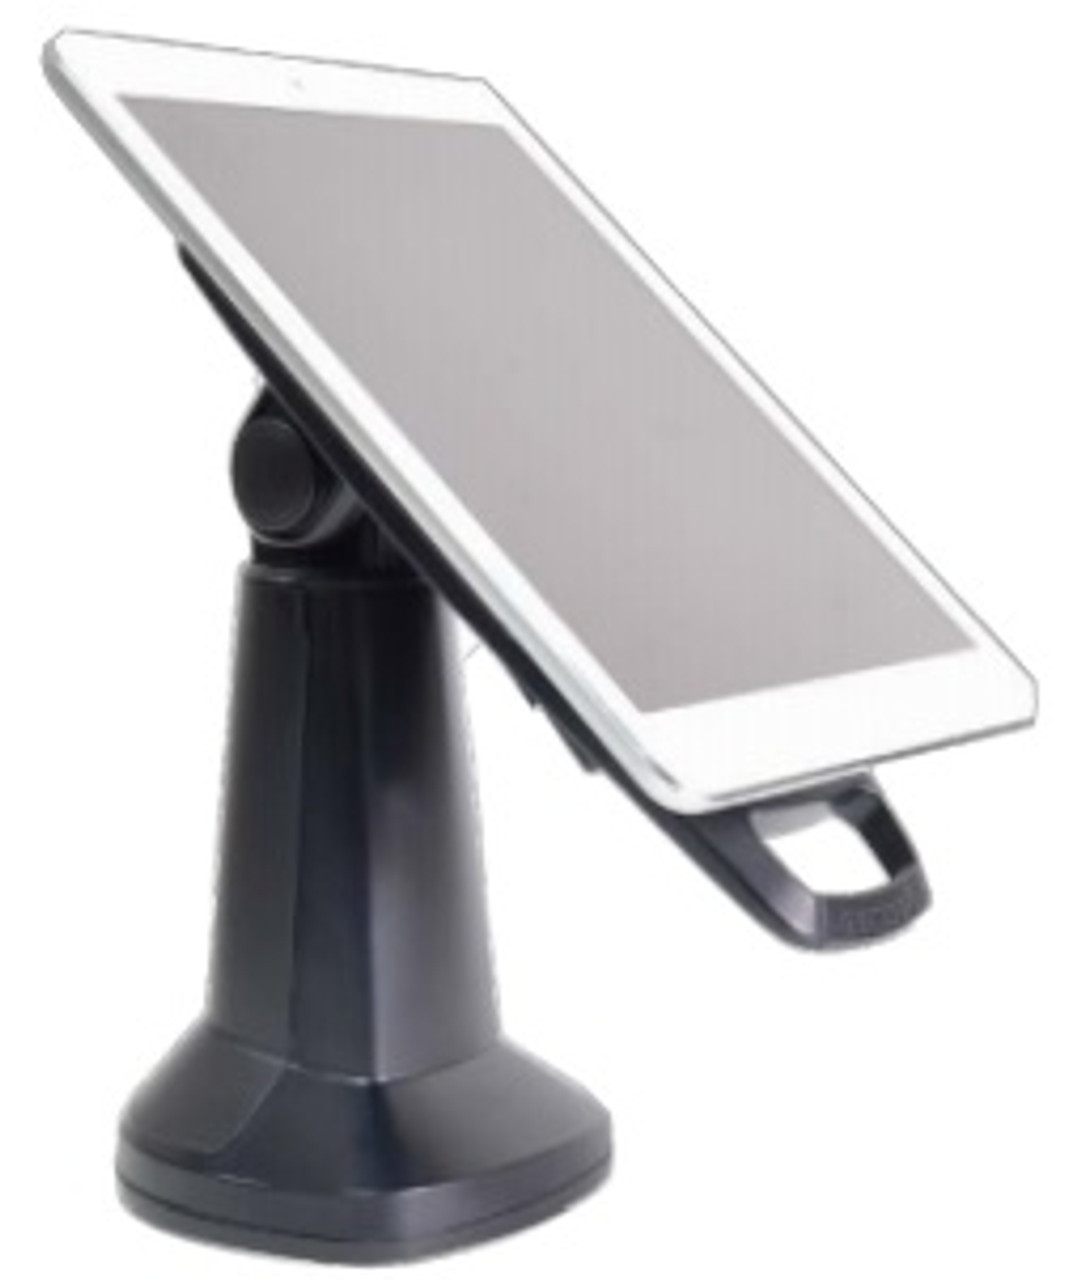 FlexiPole Tablet Universal Locking Mounting Stand by ENS